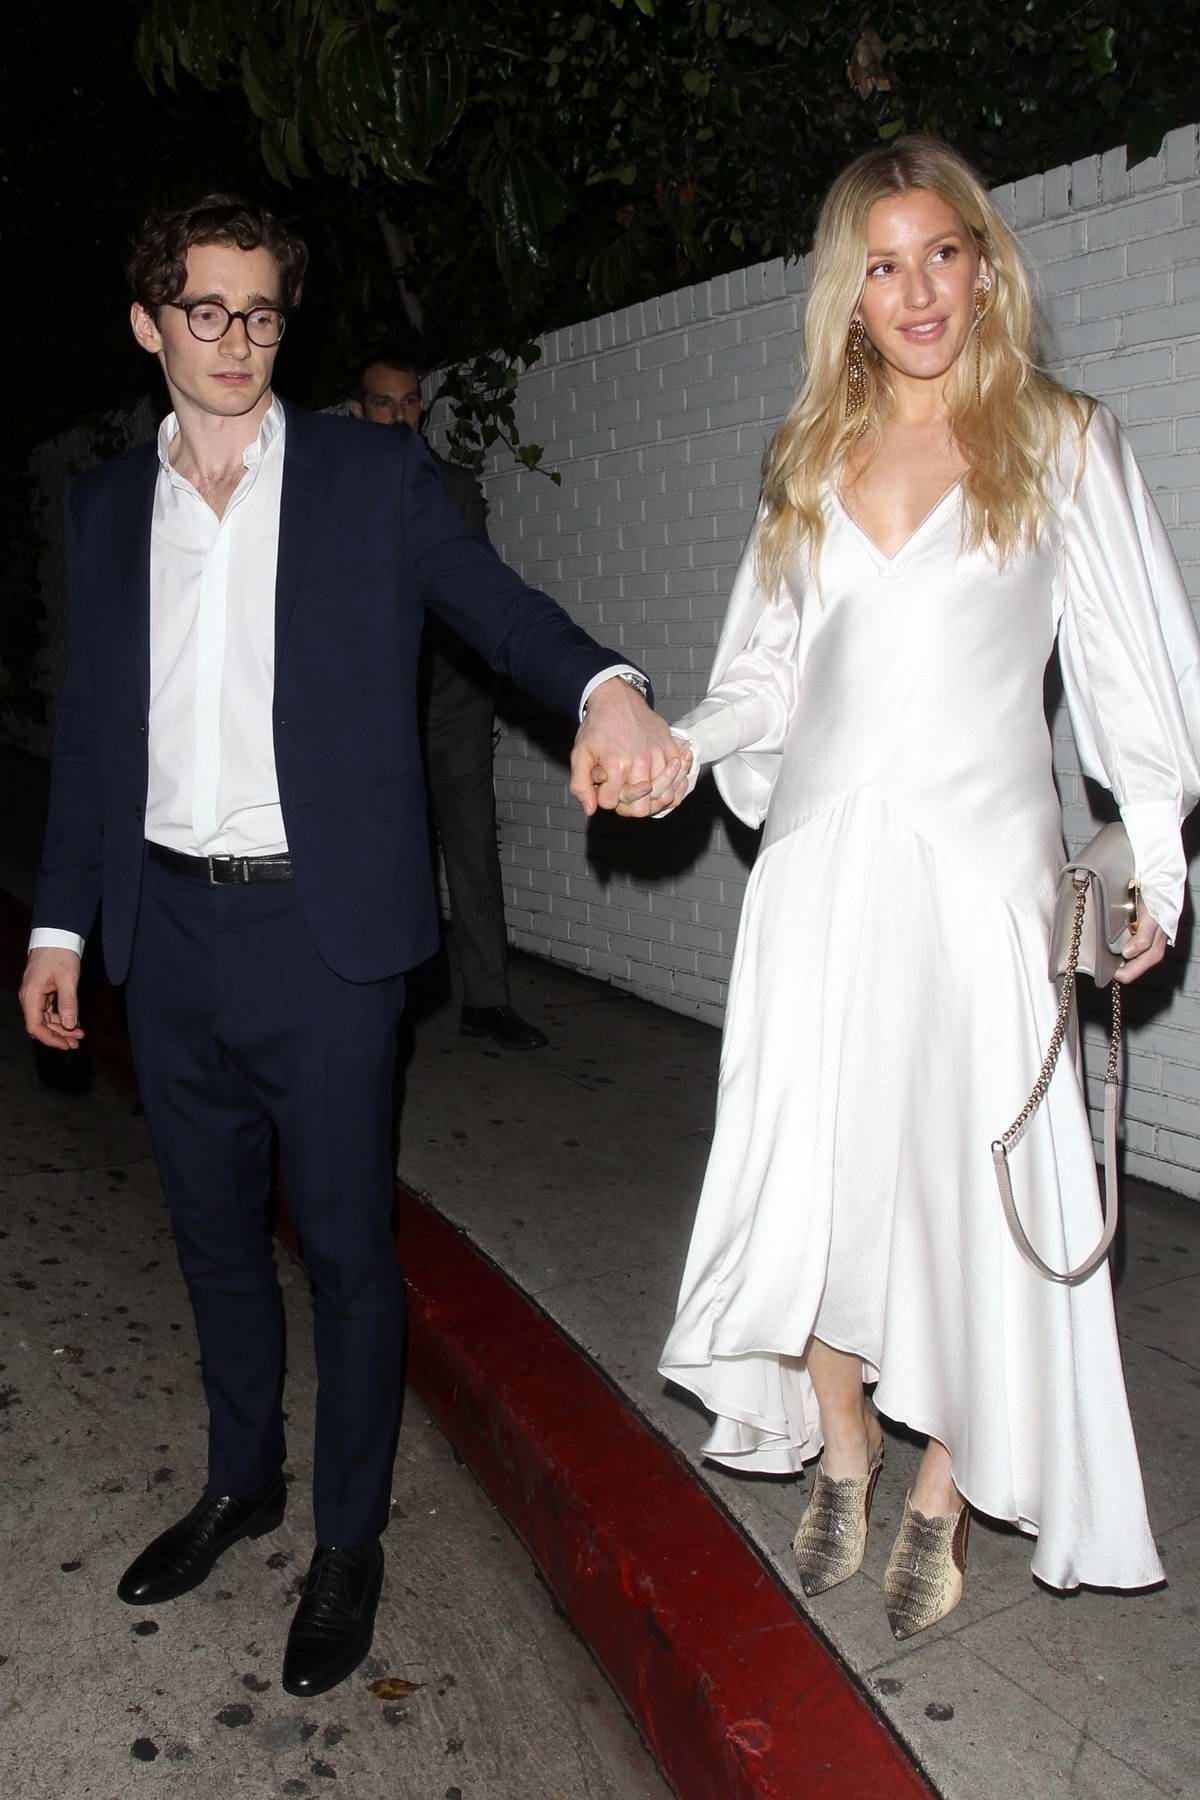 Ellie Goulding and Casper Jopling enjoys a Valentine's Day dinner date at Chateau Marmont in West Hollywood, Los Angeles